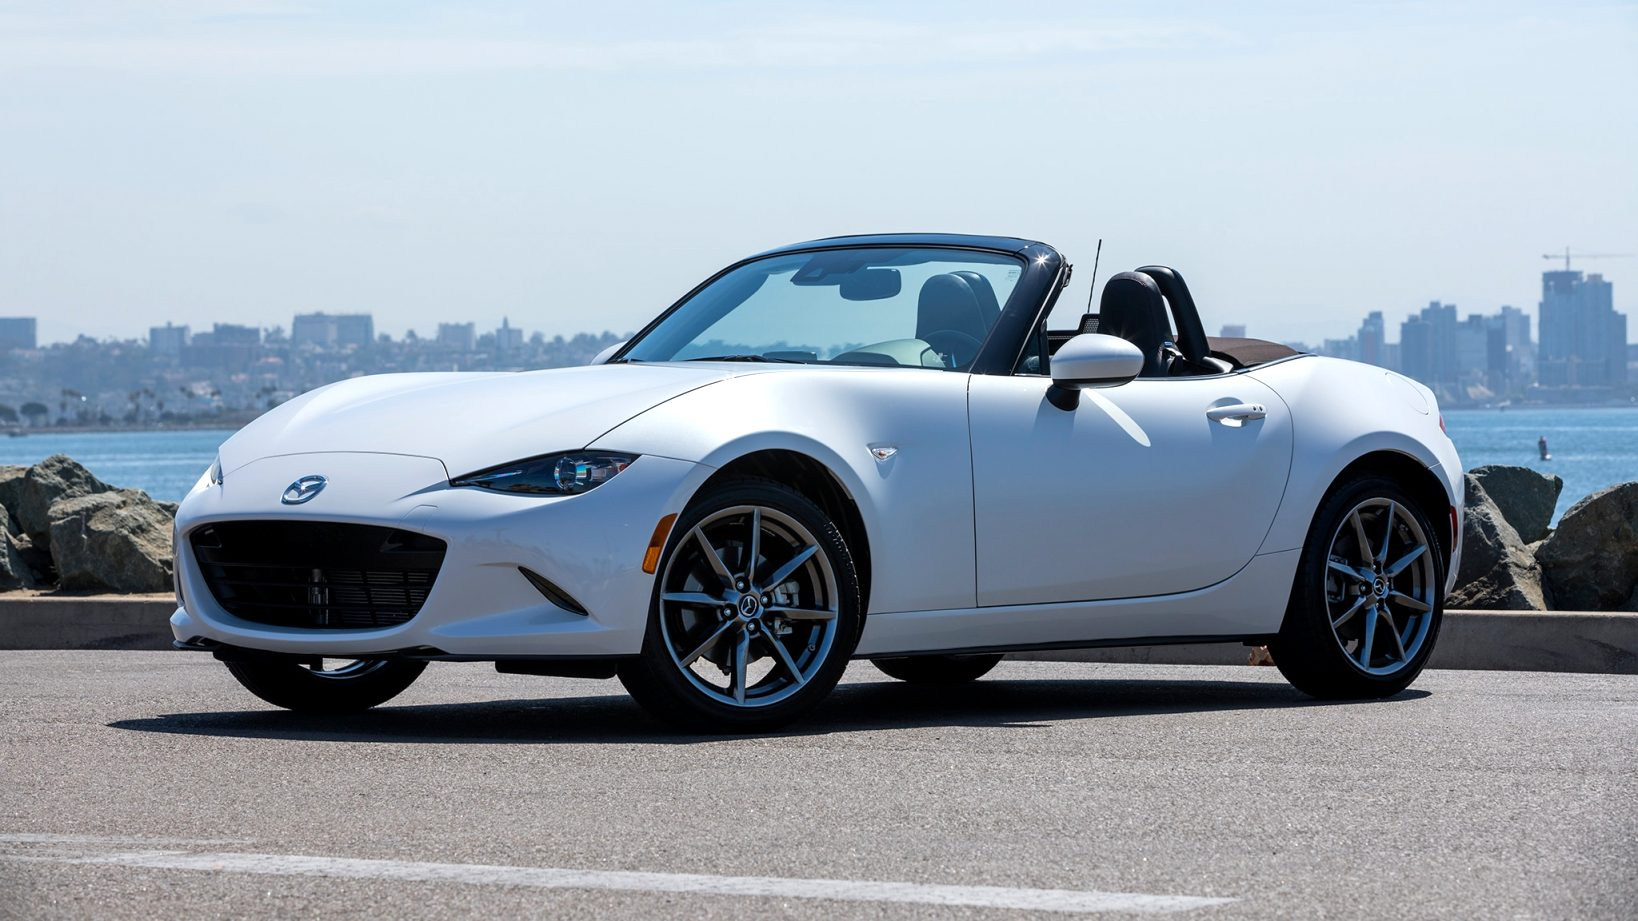 2021 mazda miata zero to 60 Interior